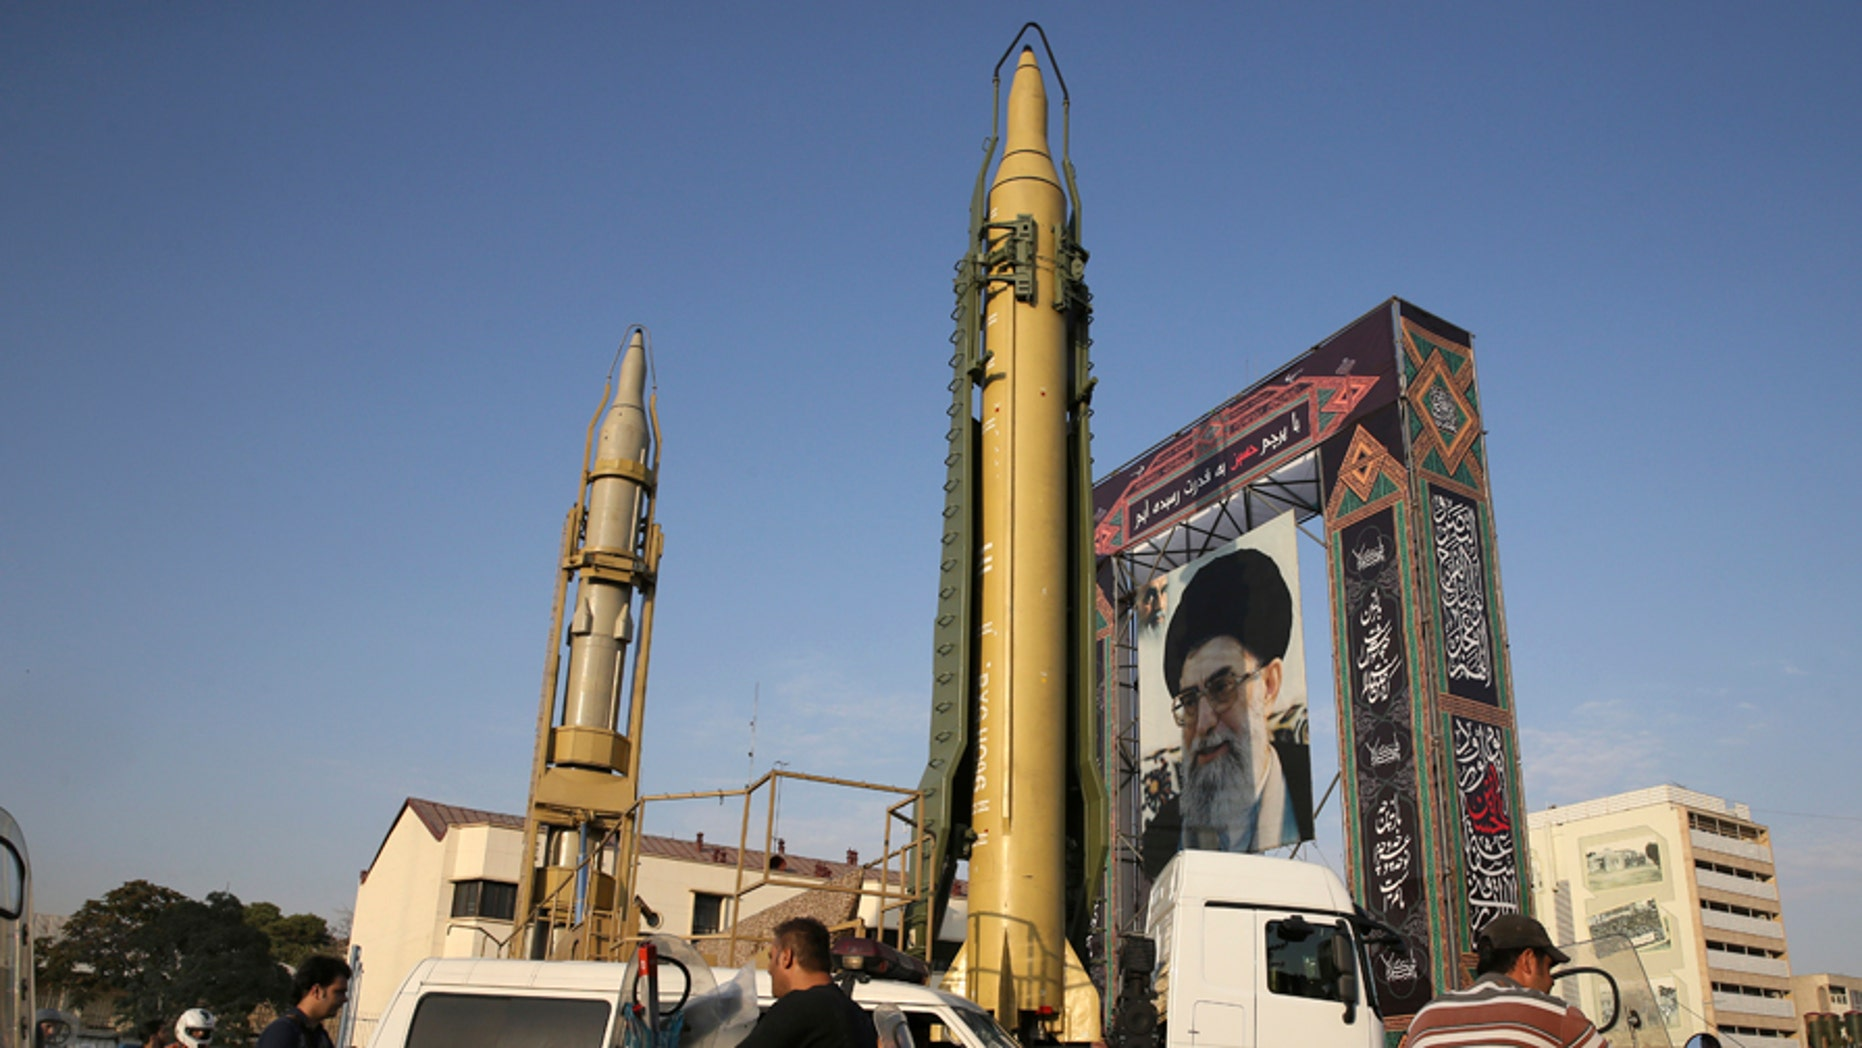 A Ghadr-H missile, center, a Sejjil missile and a portrait of the Iranian Supreme Leader Ayatollah Ali Khamenei are on display for the annual Defense Week, marking the 37th anniversary of the 1980s Iran-Iraq war, at Baharestan Sq. in Tehran, Iran, Sunday, Sept. 24, 2017